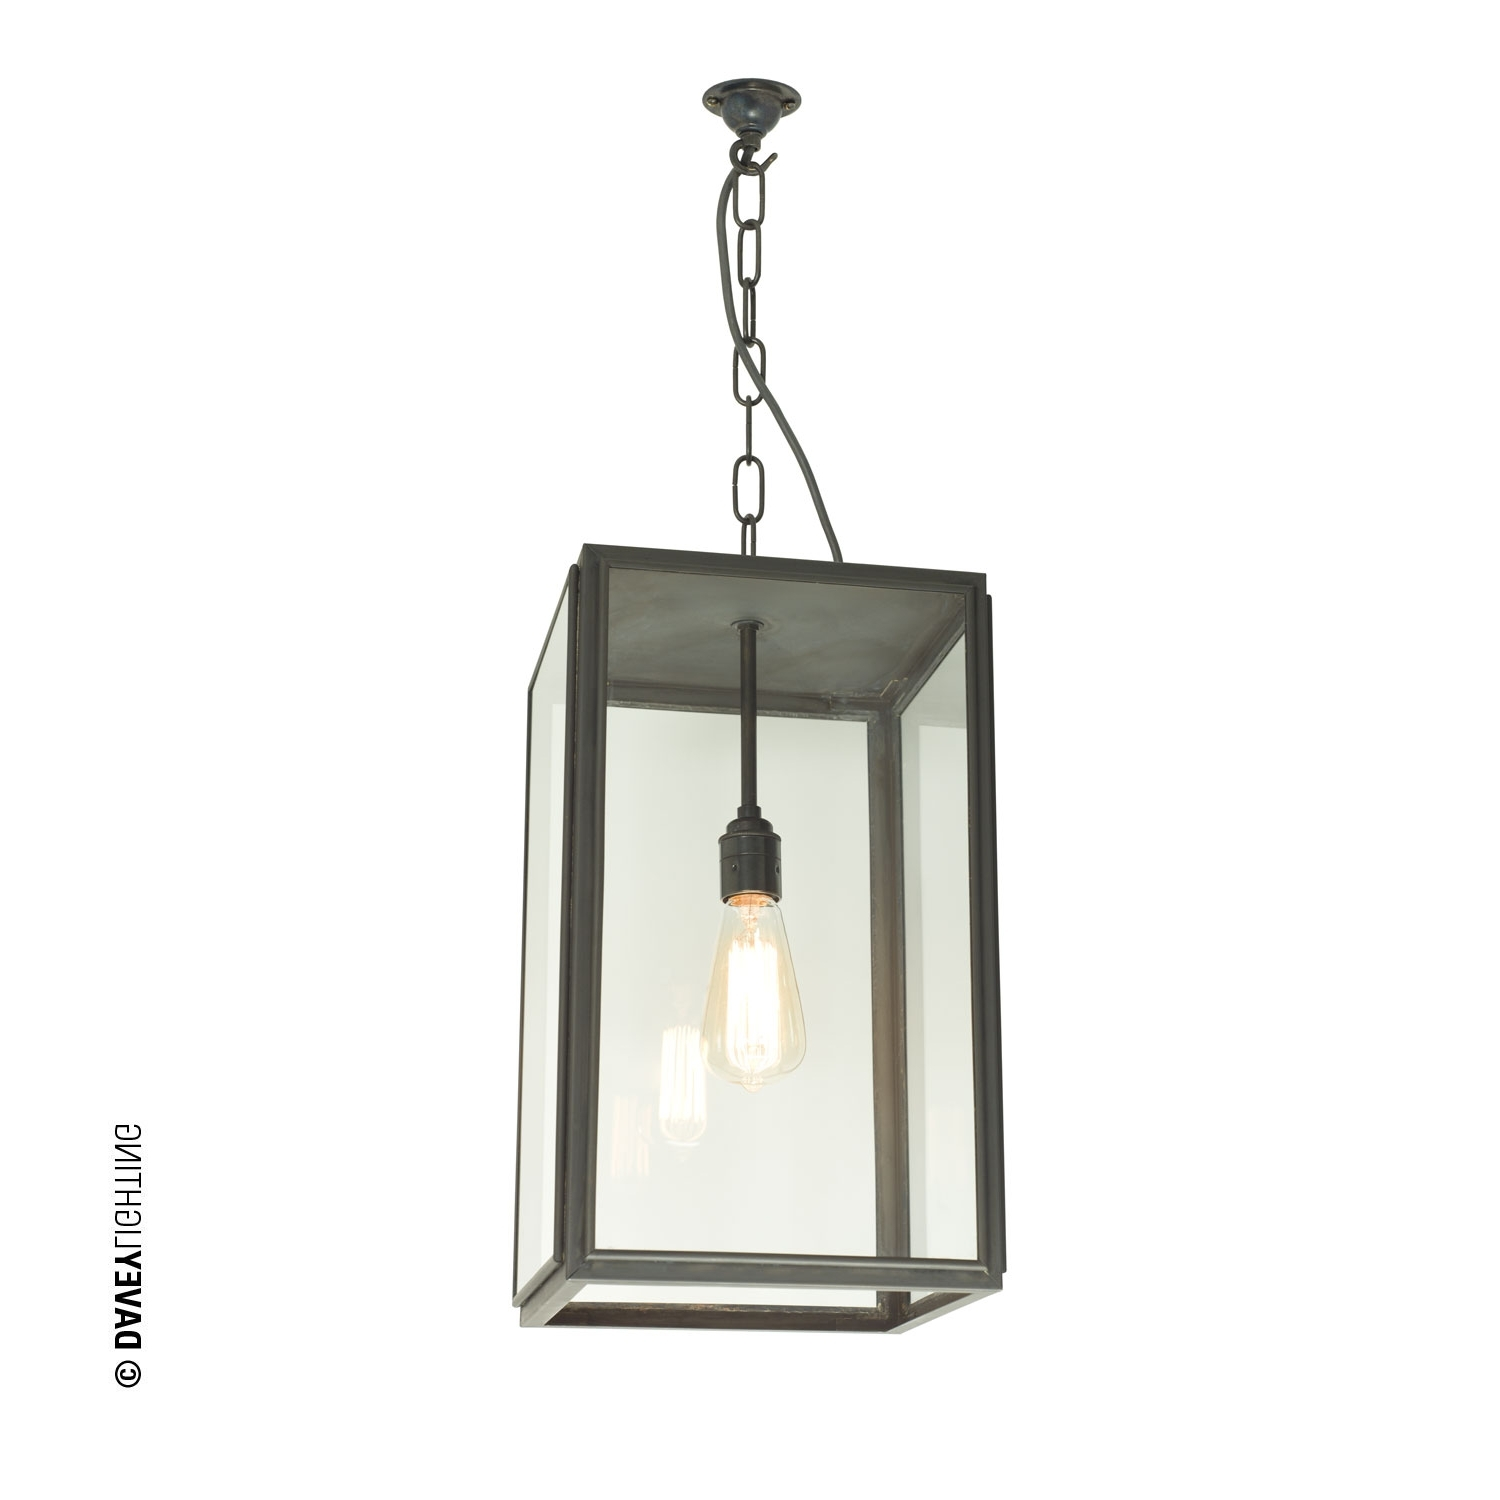 Widely Used 52 Most Exemplary Outdoor Chandeliers For Porches Round Pendant Inside Outdoor Electric Lanterns (View 18 of 20)